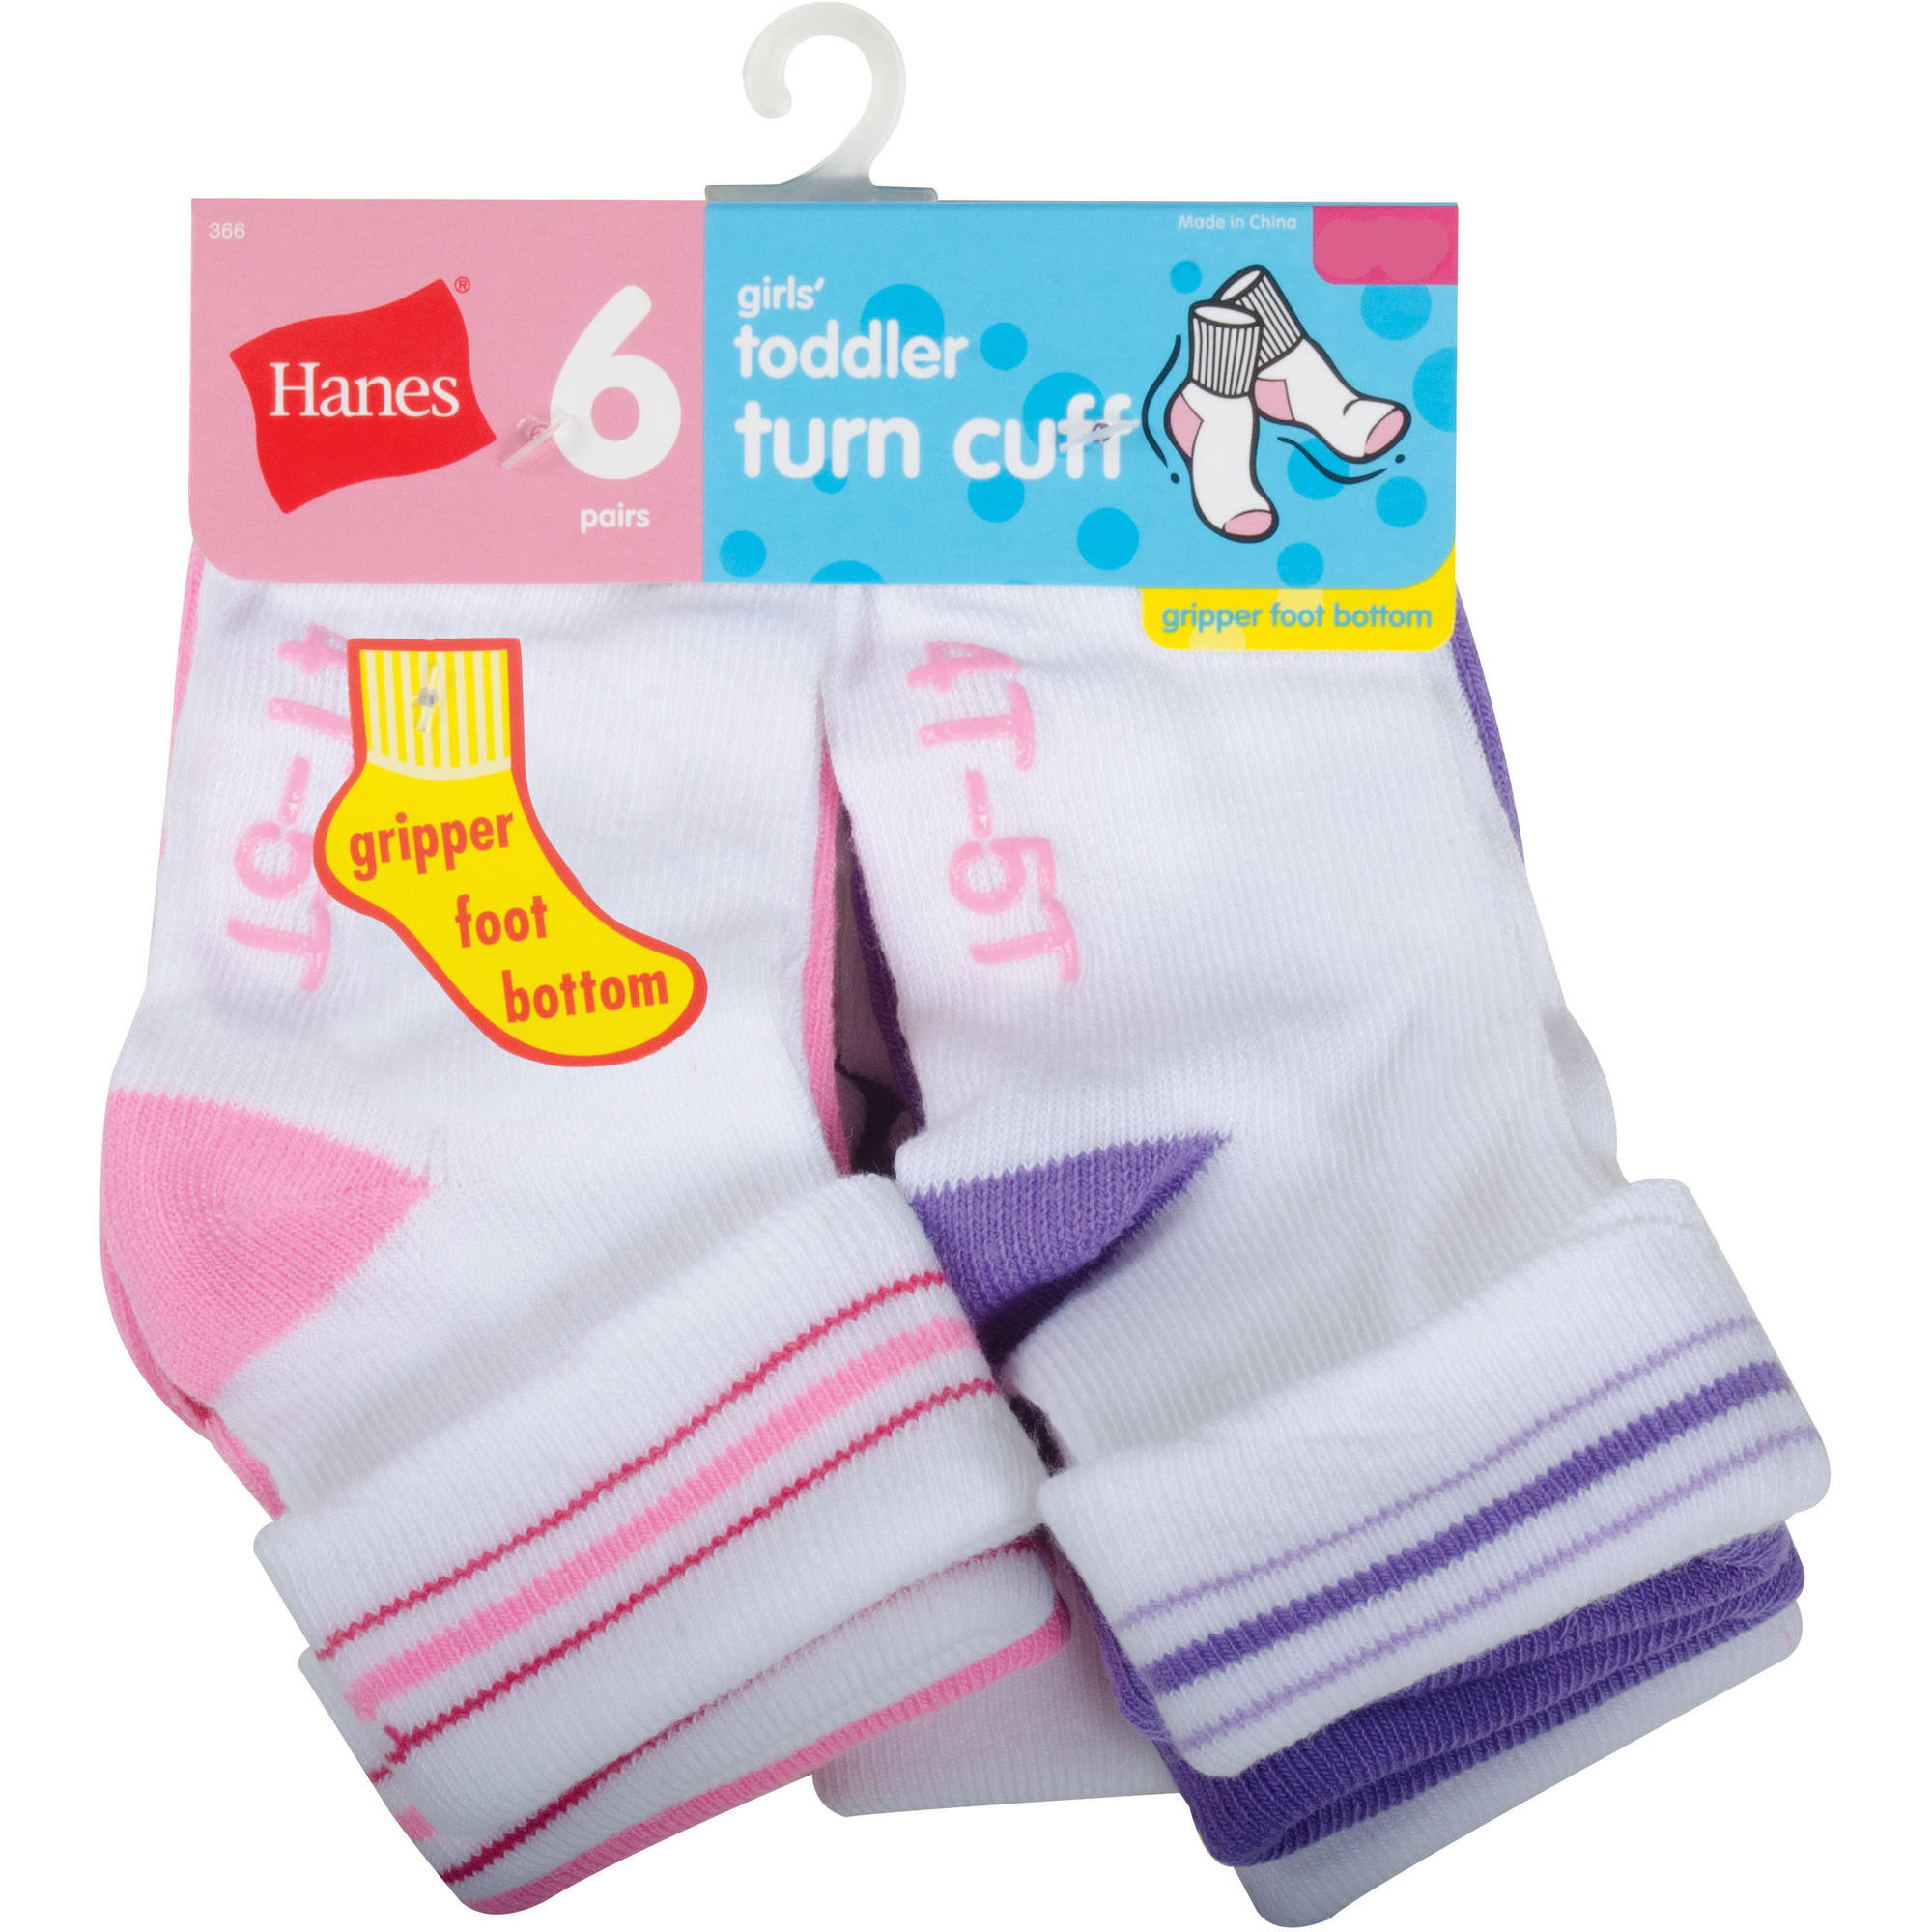 Hanes Baby Toddler Girl Turn Cuff Socks - 6 Pair